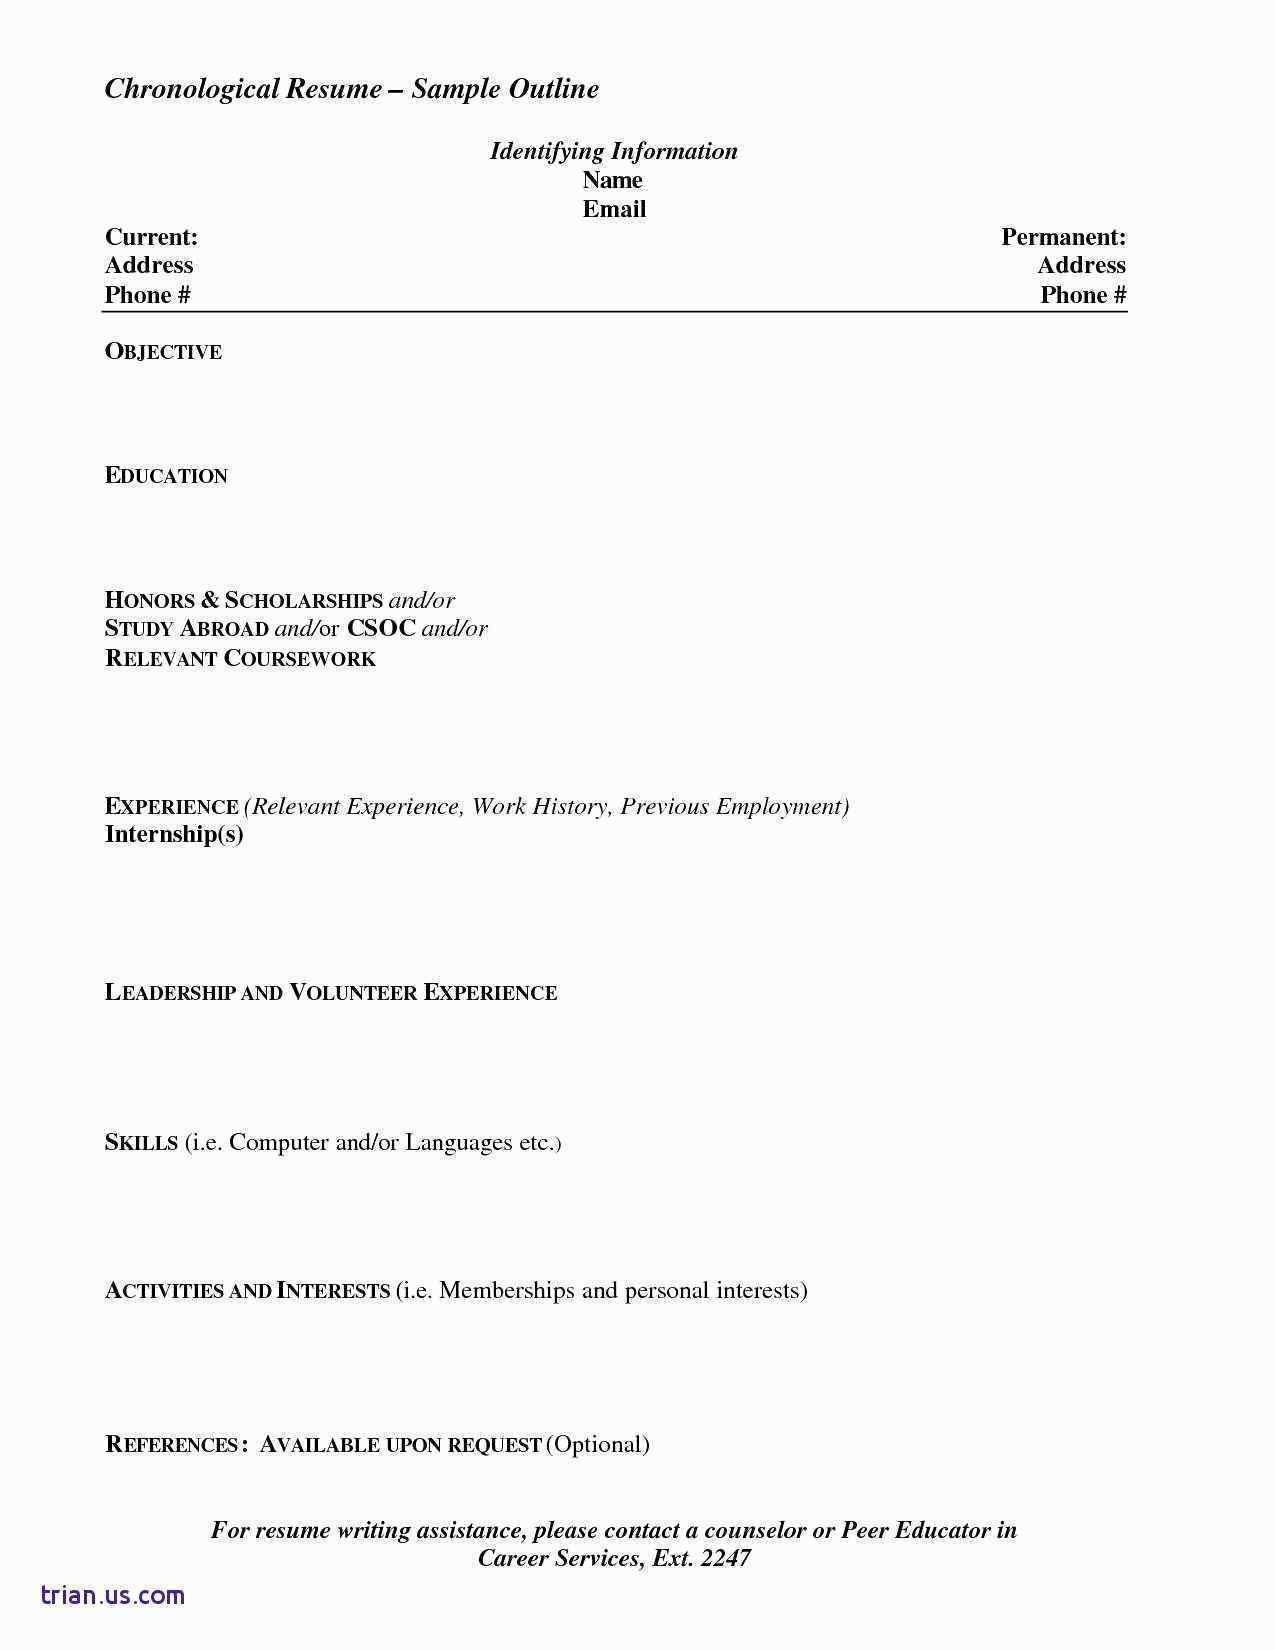 Resume for Entry Level Electrical Engineer - Entry Level Electrical Engineering Cover Letter Unique 38 Beautiful